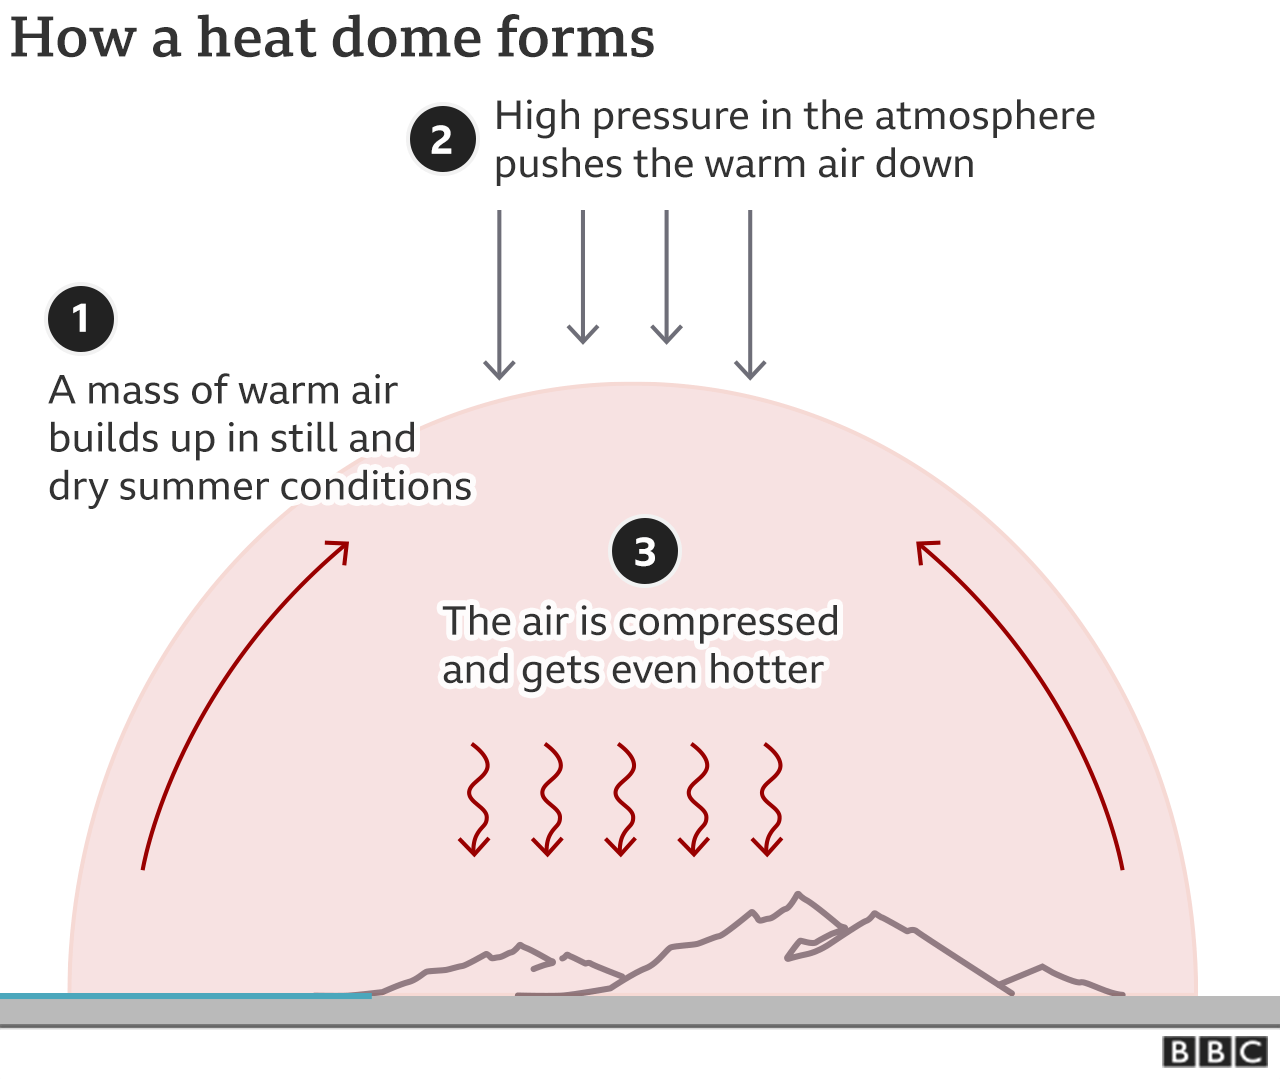 A graphic showing how heat domes are formed. 1) A mass of warm air builds up in still and dry summer conditions 2) High pressure in the atmosphere pressures the warm air down 3) The air is compressed and gets even hotter